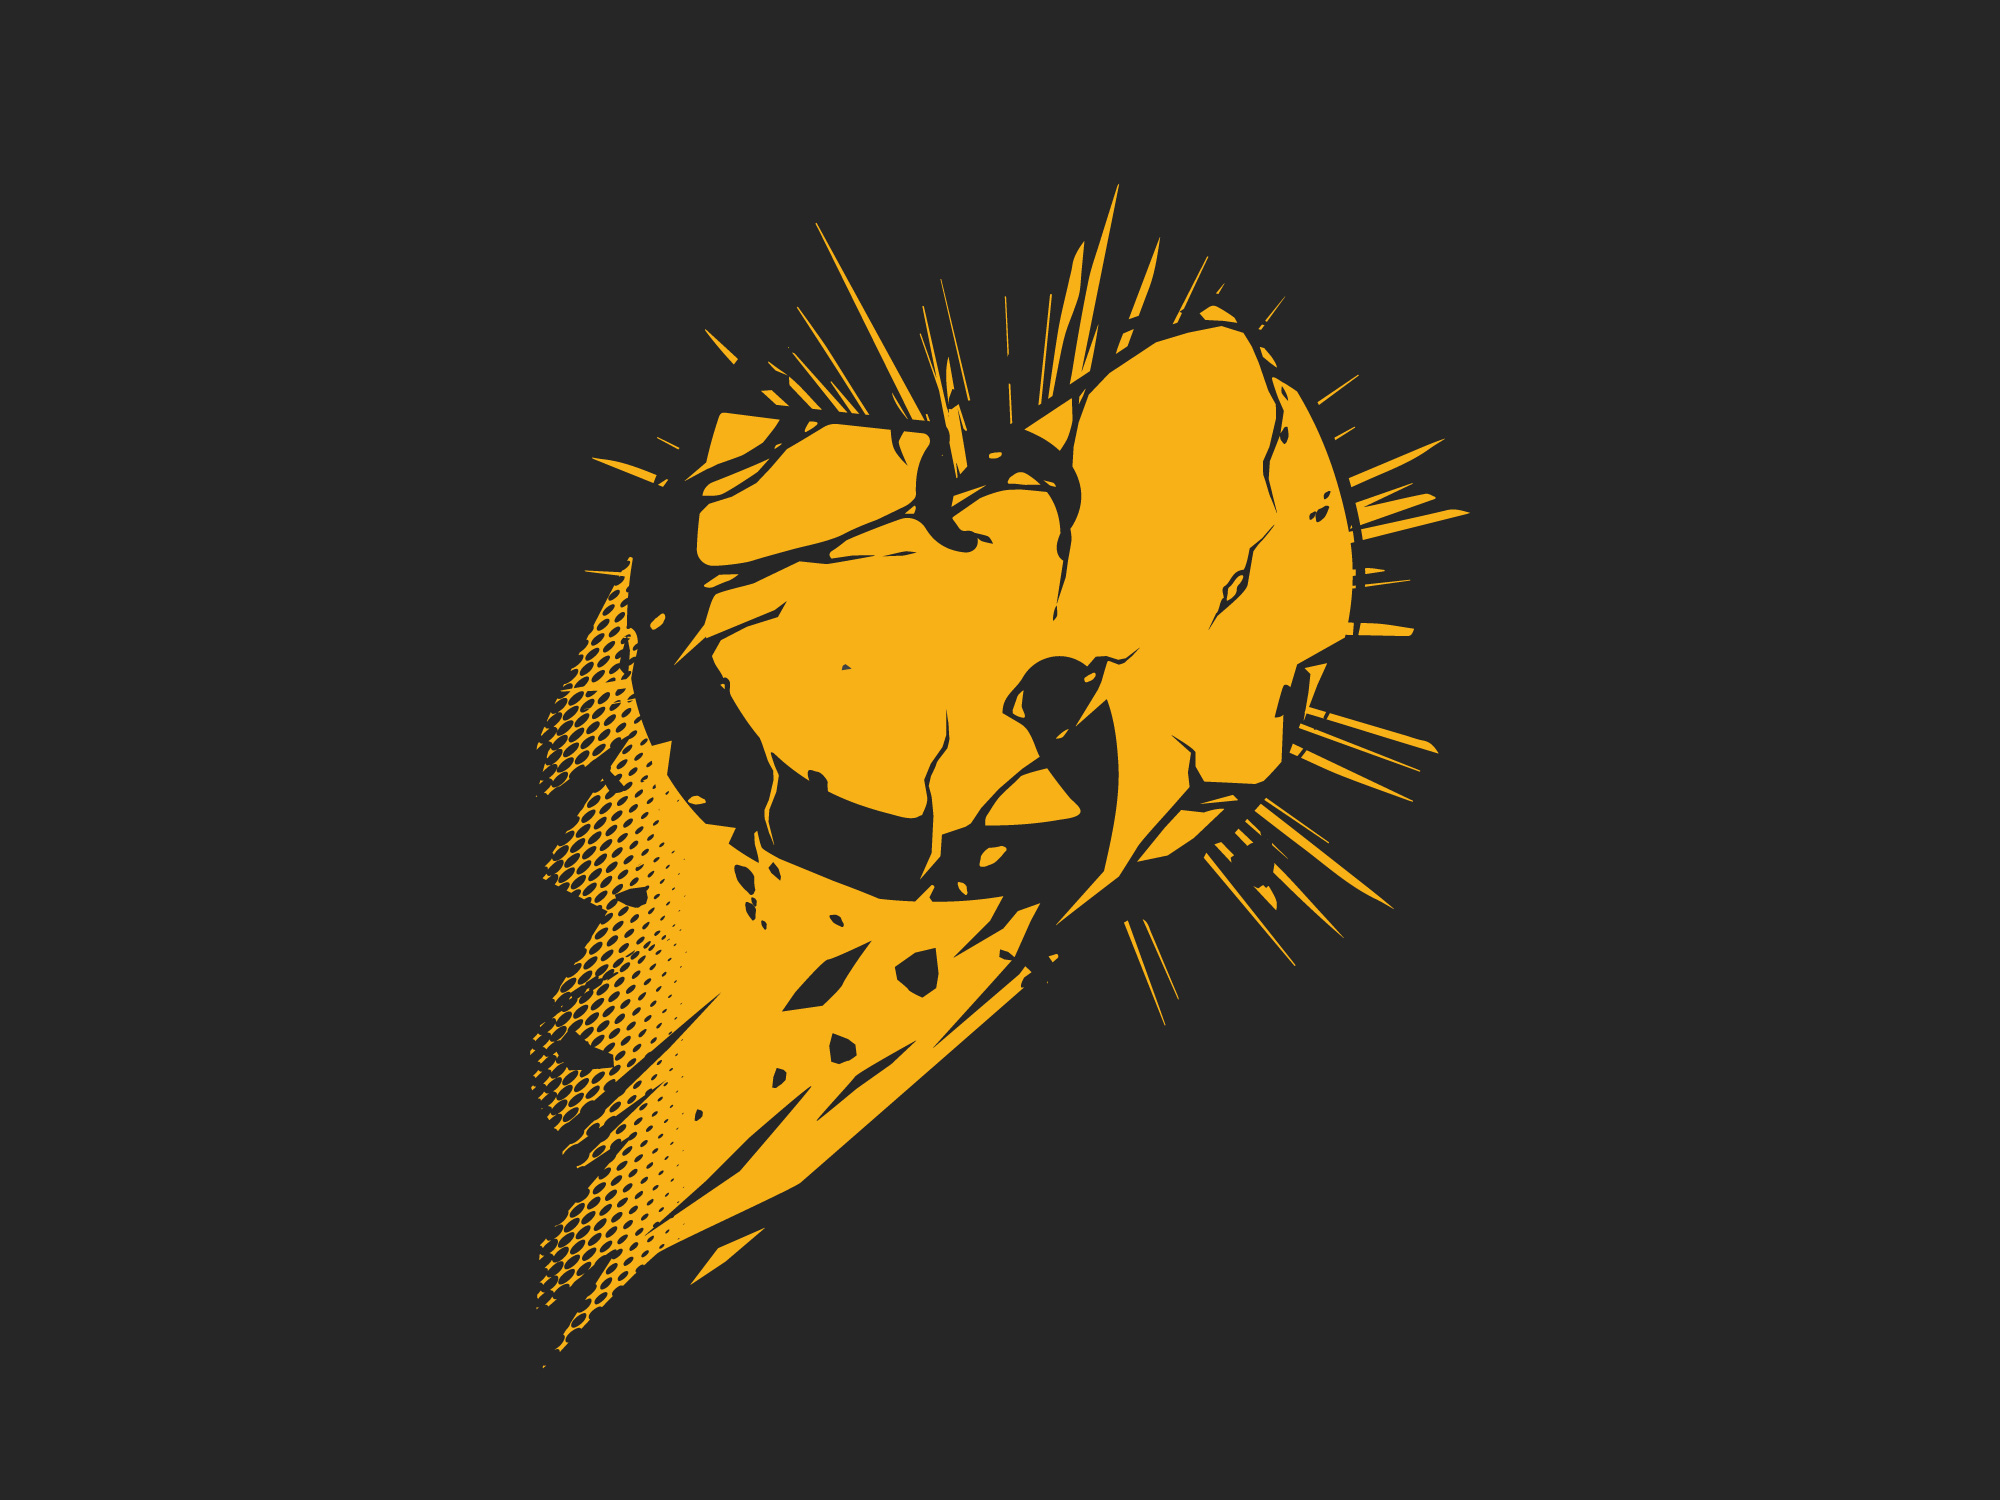 Wu-Tang Clan - Old Dirty Dermot Vector Design & Illustration